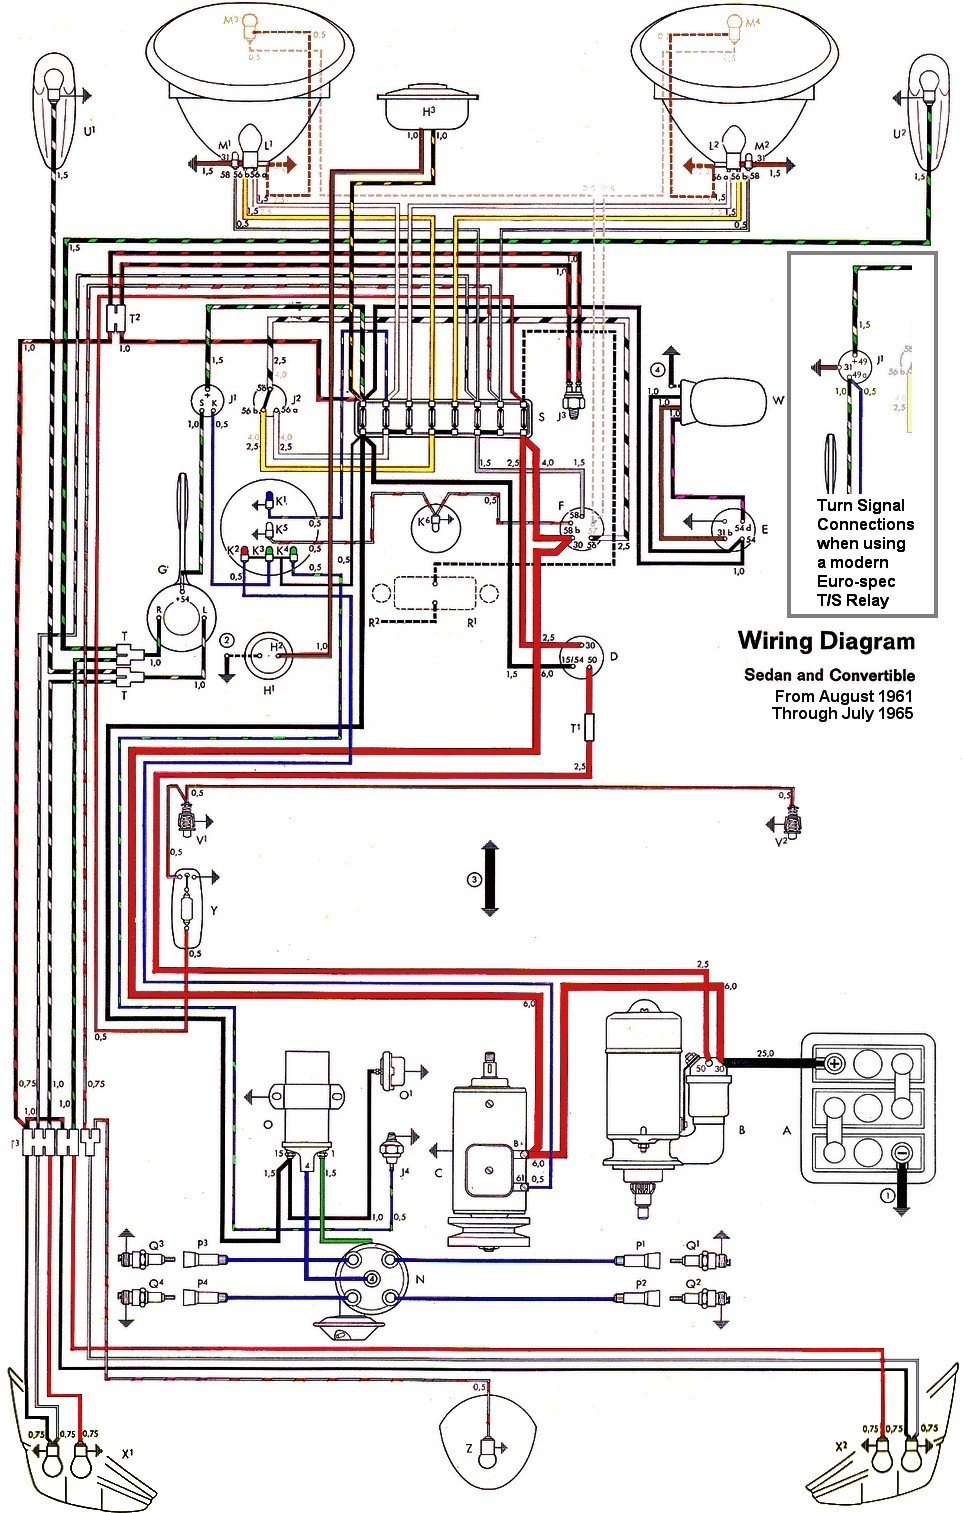 Wiring Diagrams 63 65 Corvette Diagram 1963 1964 1965 Wire Rh Abetter Pw